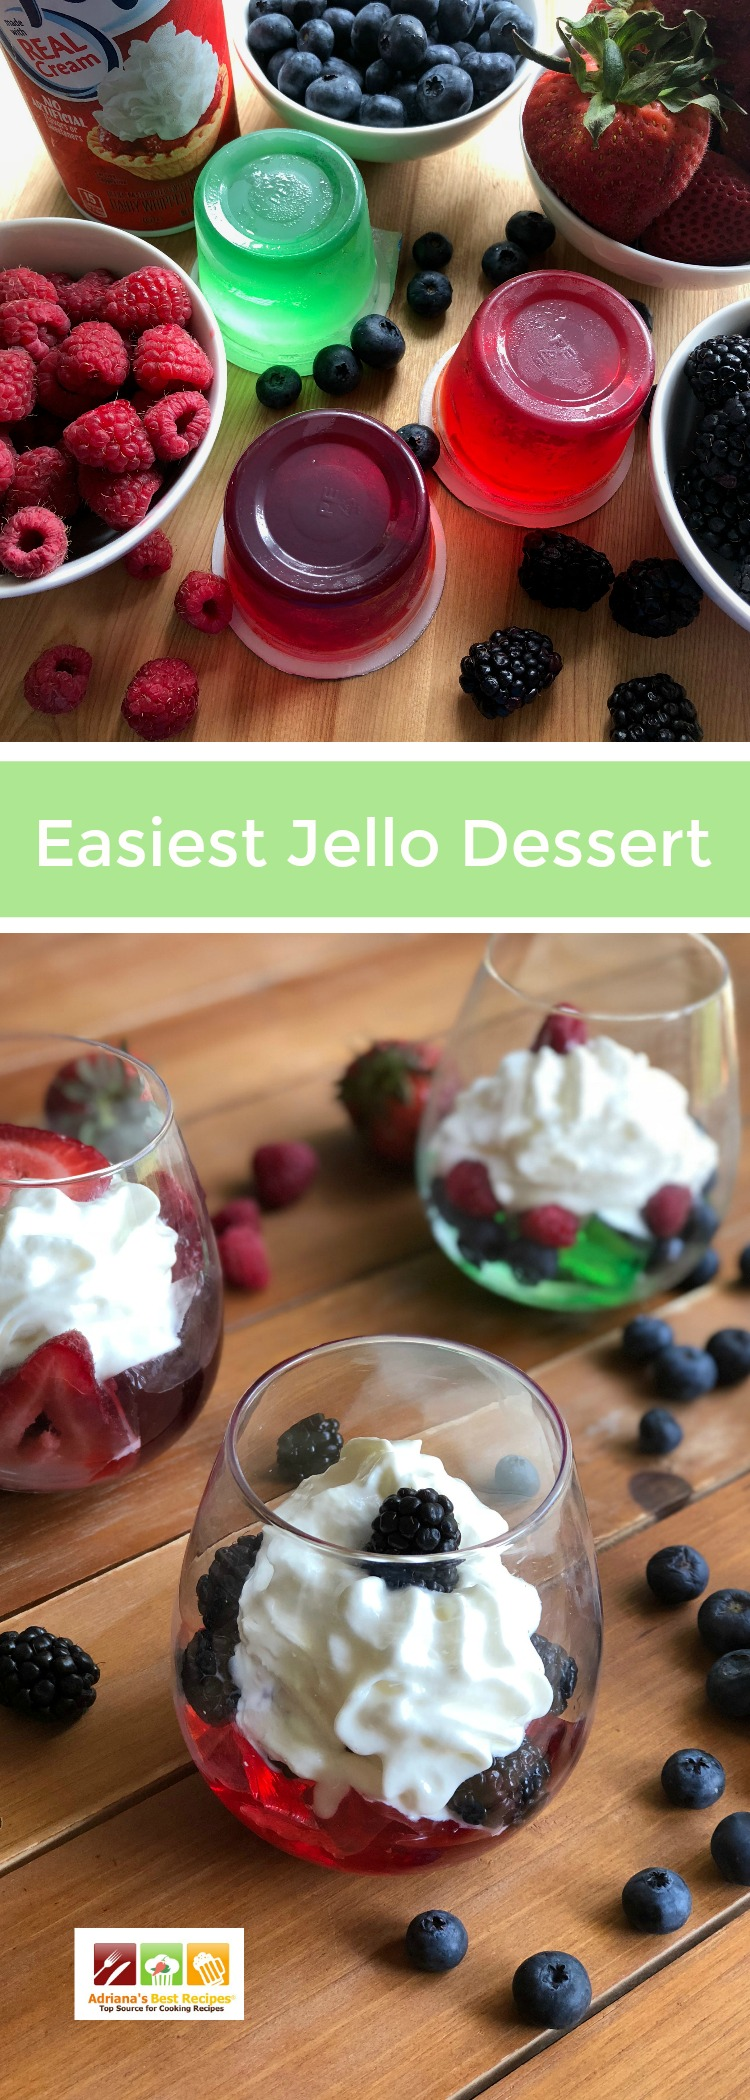 This is the easiest Jello Dessert ever. Made with ready to use jello, whipped cream and seasonal fruits. You can choose any flavors and adapt depending your tastebuds.